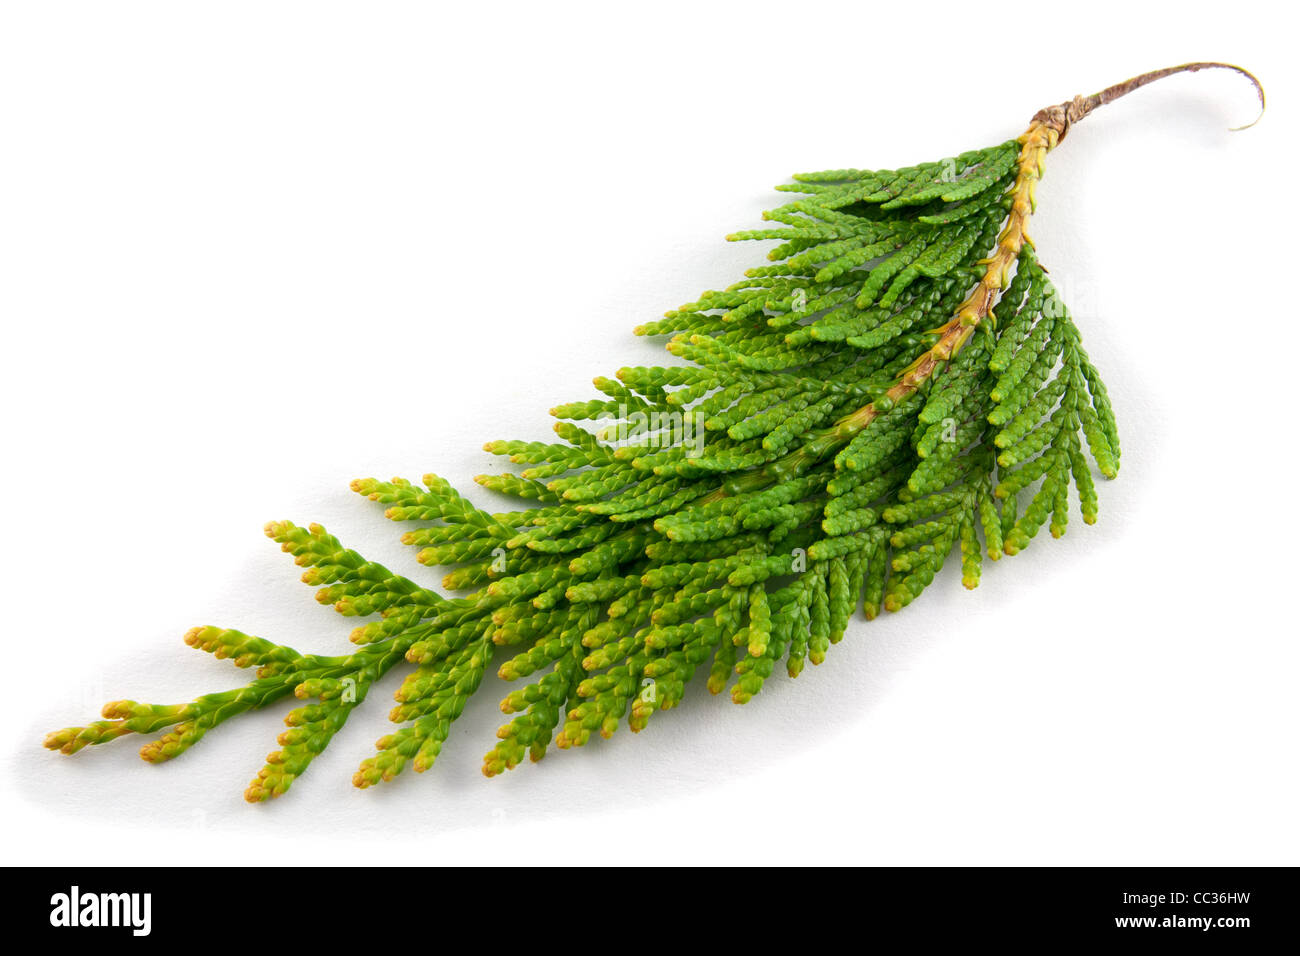 Close-up photo of thuja twig on a white background - Stock Image